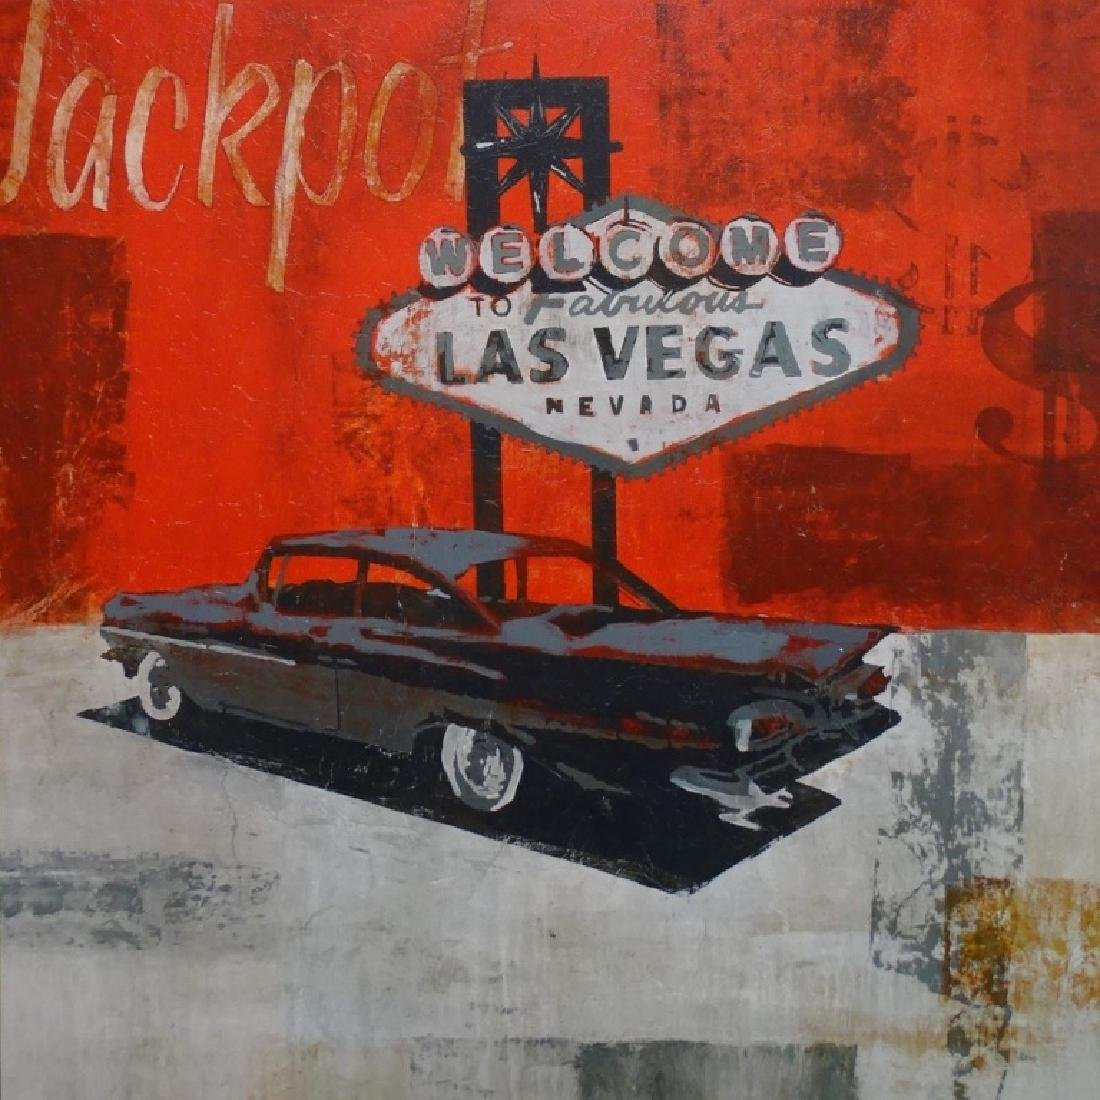 LARGE LAS VEGAS HIGH ROLLER GICLEE ON CANVAS